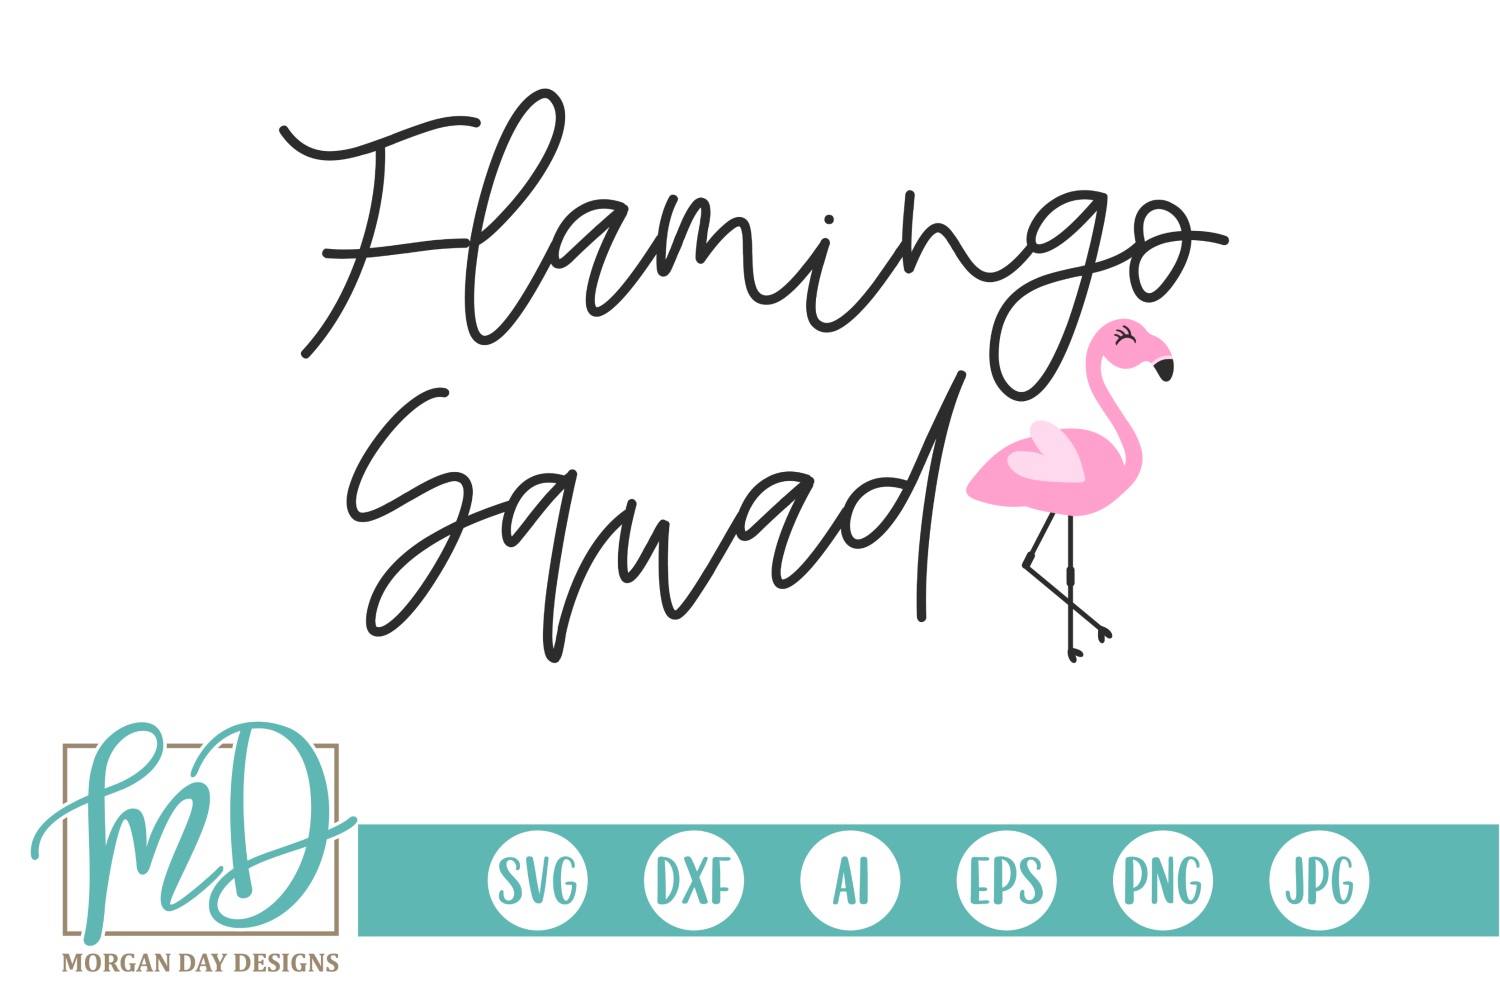 Download Free Flamingo Squad Graphic By Morgan Day Designs Creative Fabrica for Cricut Explore, Silhouette and other cutting machines.